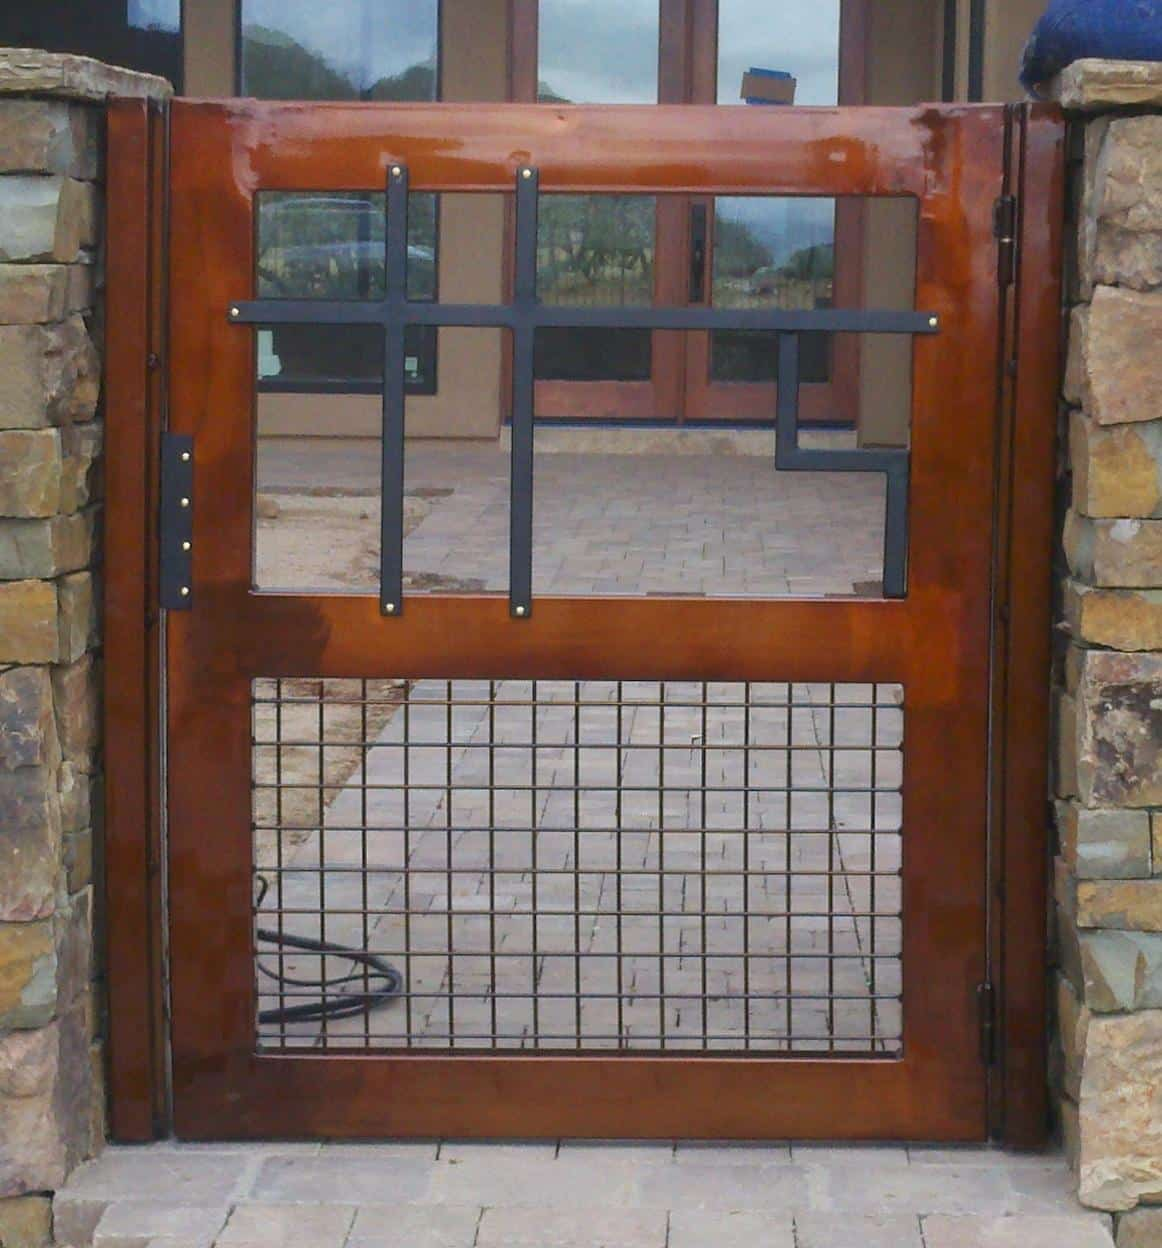 Wrought iron gate with geometric pattern and lattice work - made in Tucson IG107